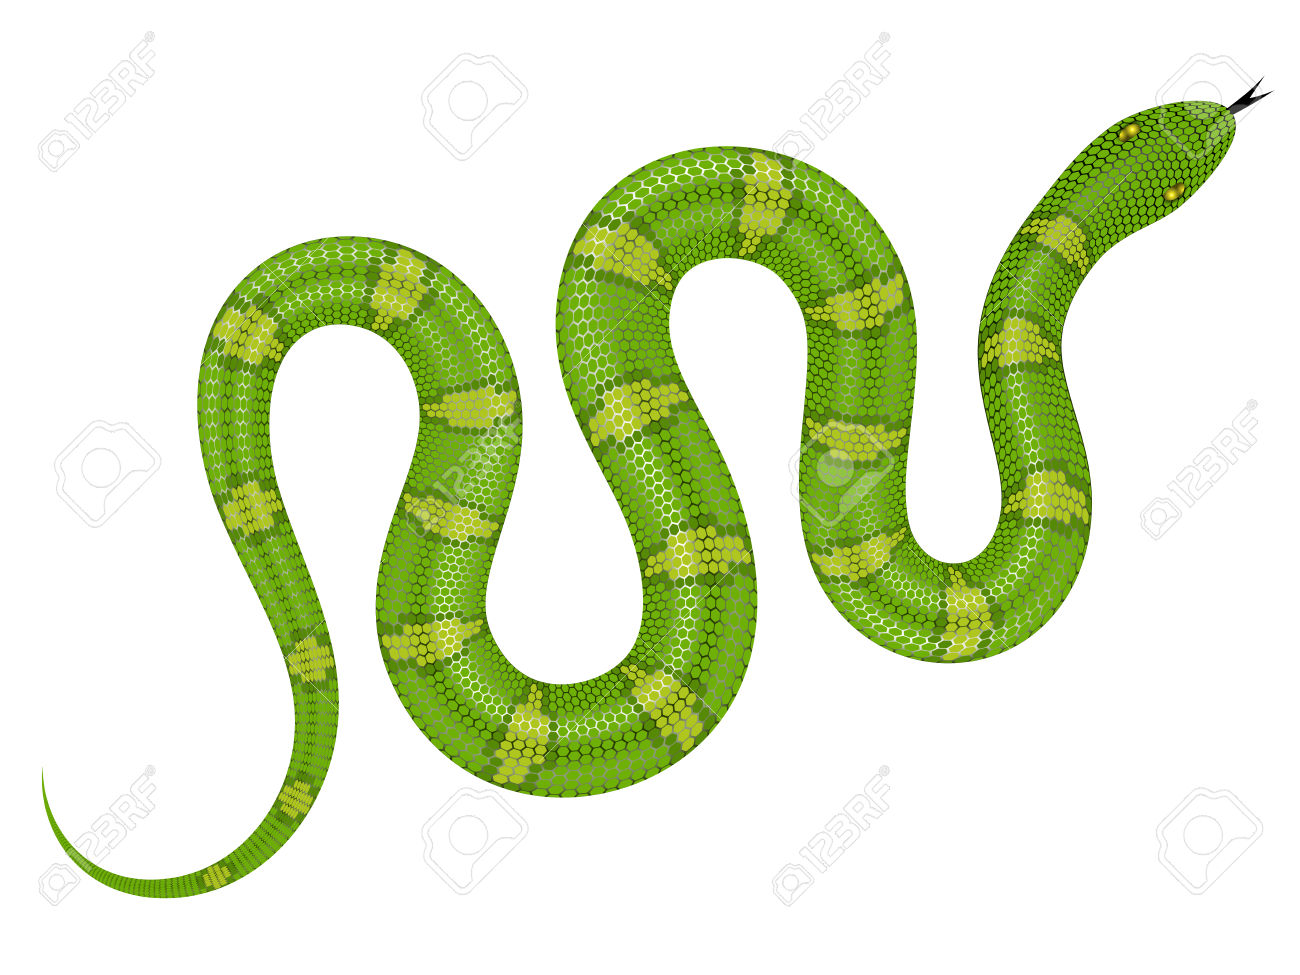 Smooth Green Snake clipart #14, Download drawings